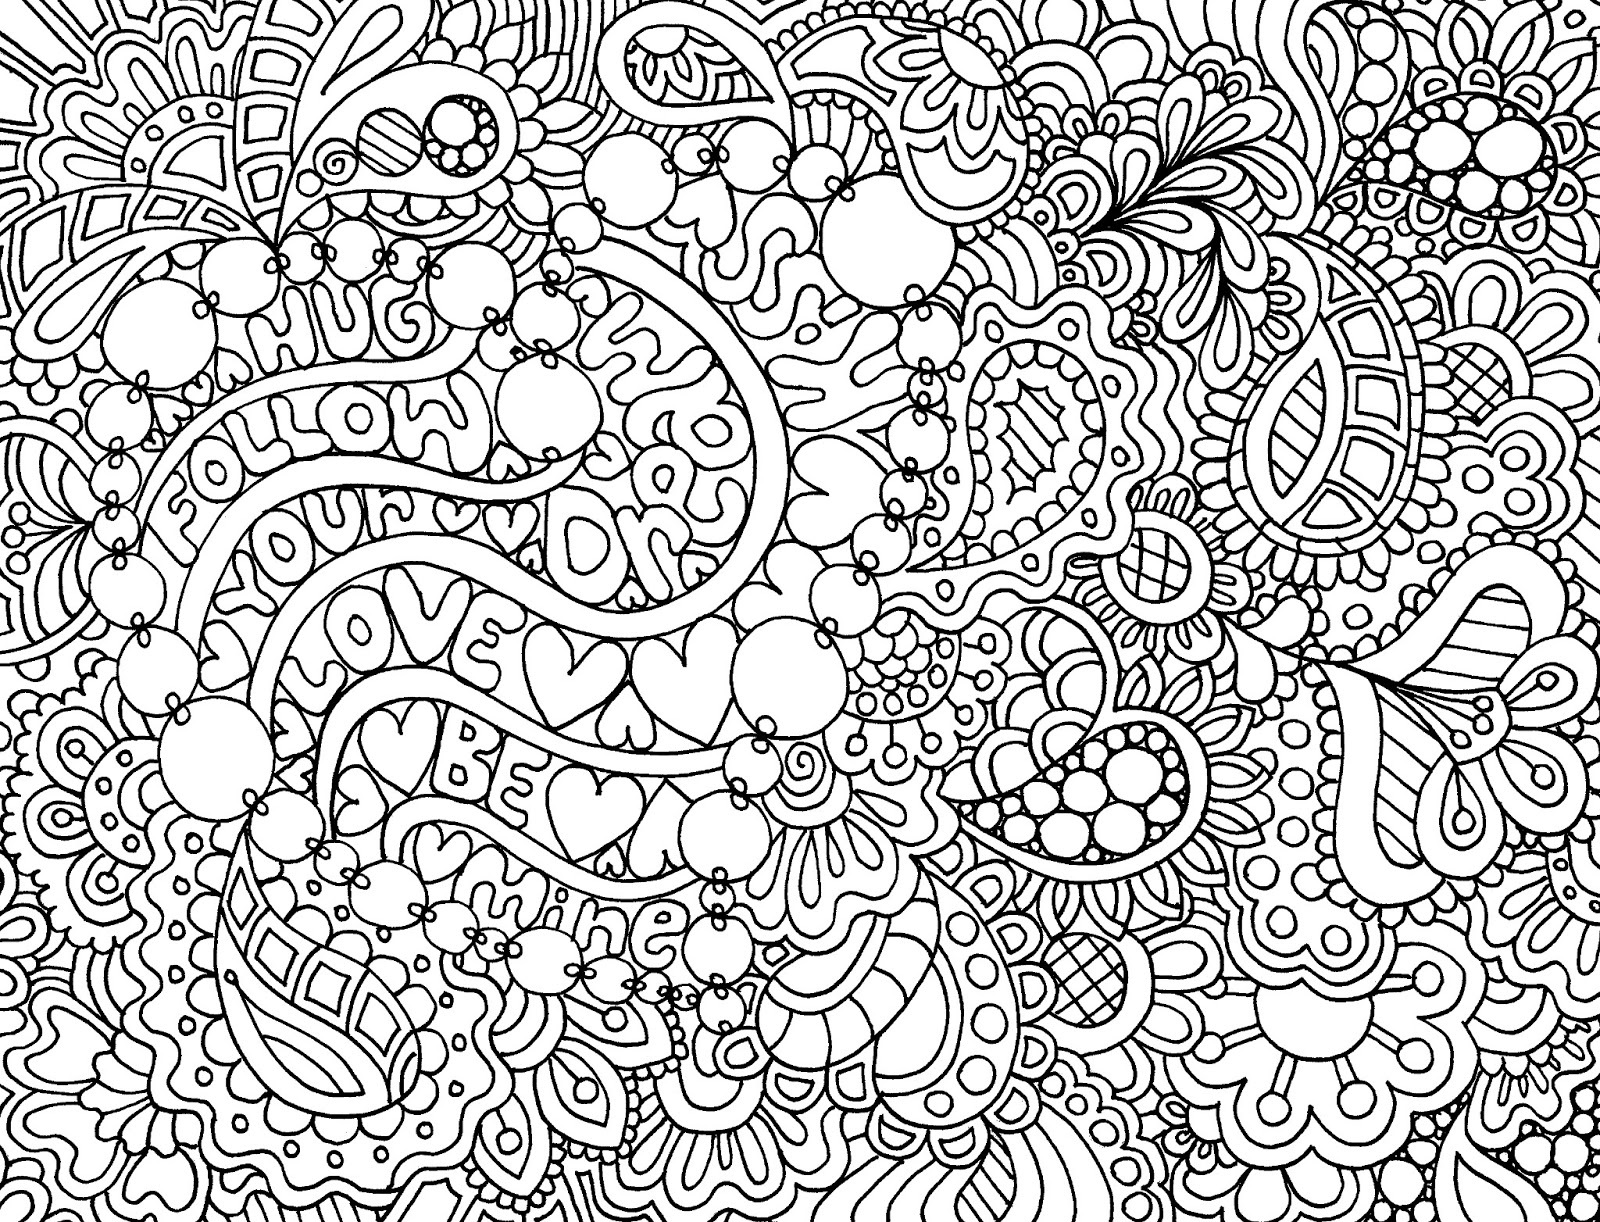 free zen coloring pages zen antistress abstract pattern inspired anti stress free coloring pages zen